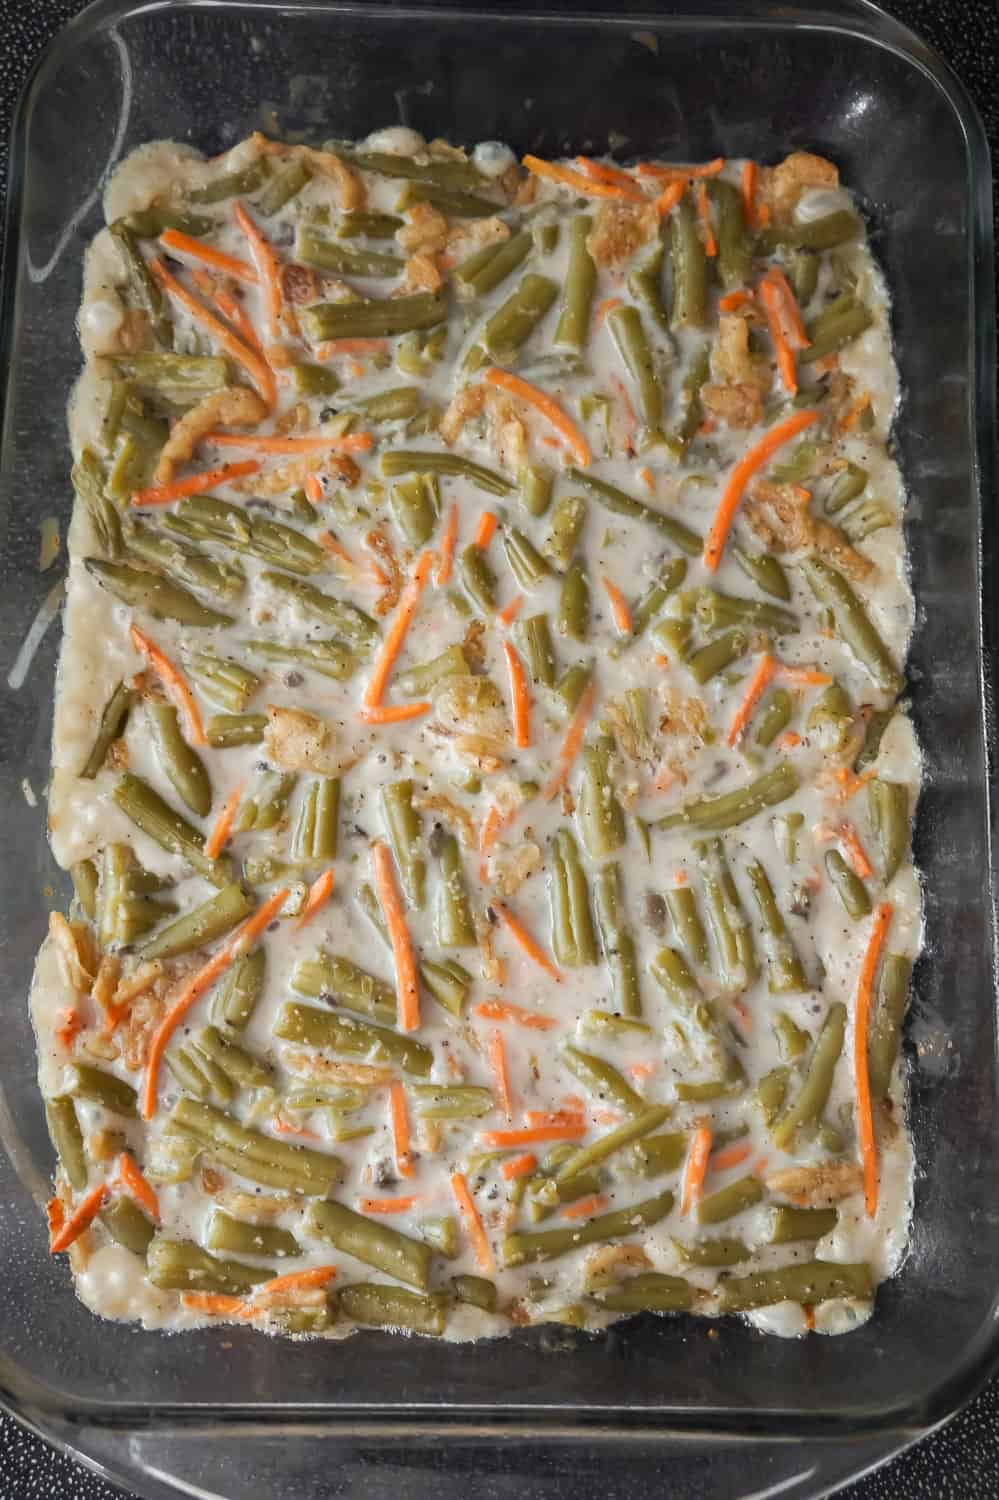 green beans, carrots and mushrooms soup mixture in a 9 x 13 inch baking dish